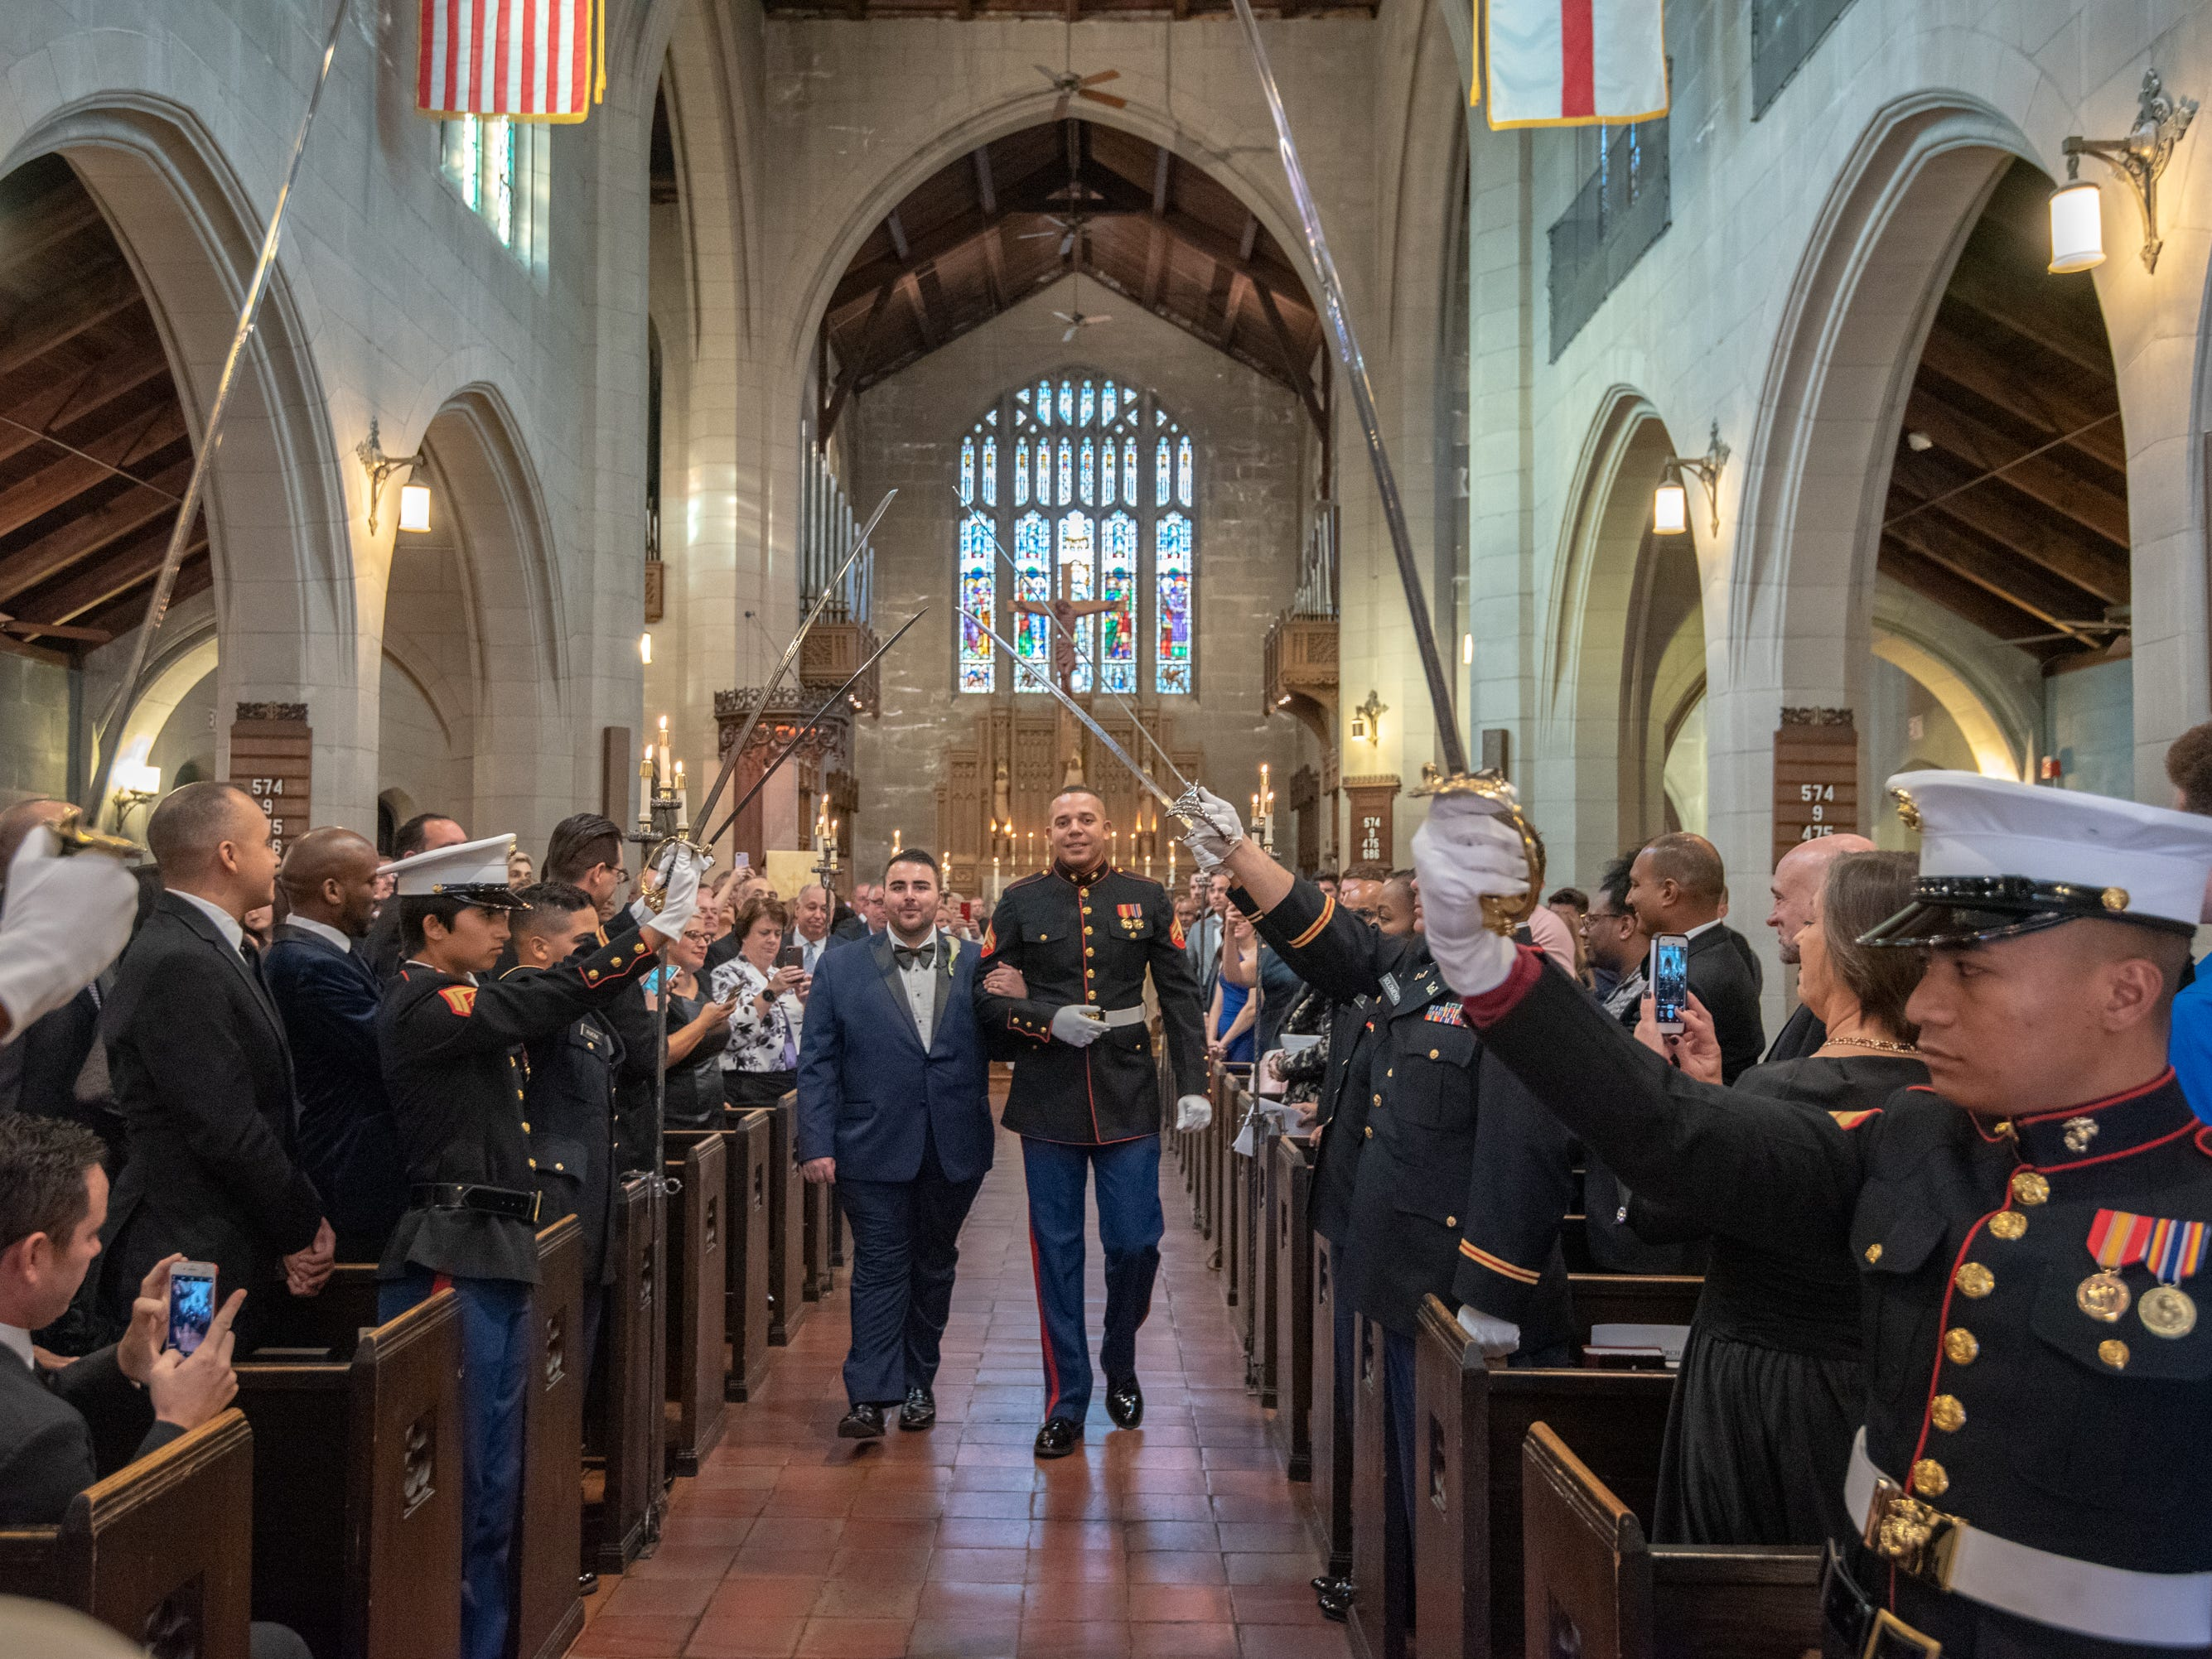 Christian Fuscarino, (left) Executive Director of Garden State Equality, and U.S. Marine Corporal Aaron Williams (in uniform) were married at Trinity Church in Asbury Park on Sunday, November 11, 2018. Here, they pass under the raised swords at the end of the ceremony.